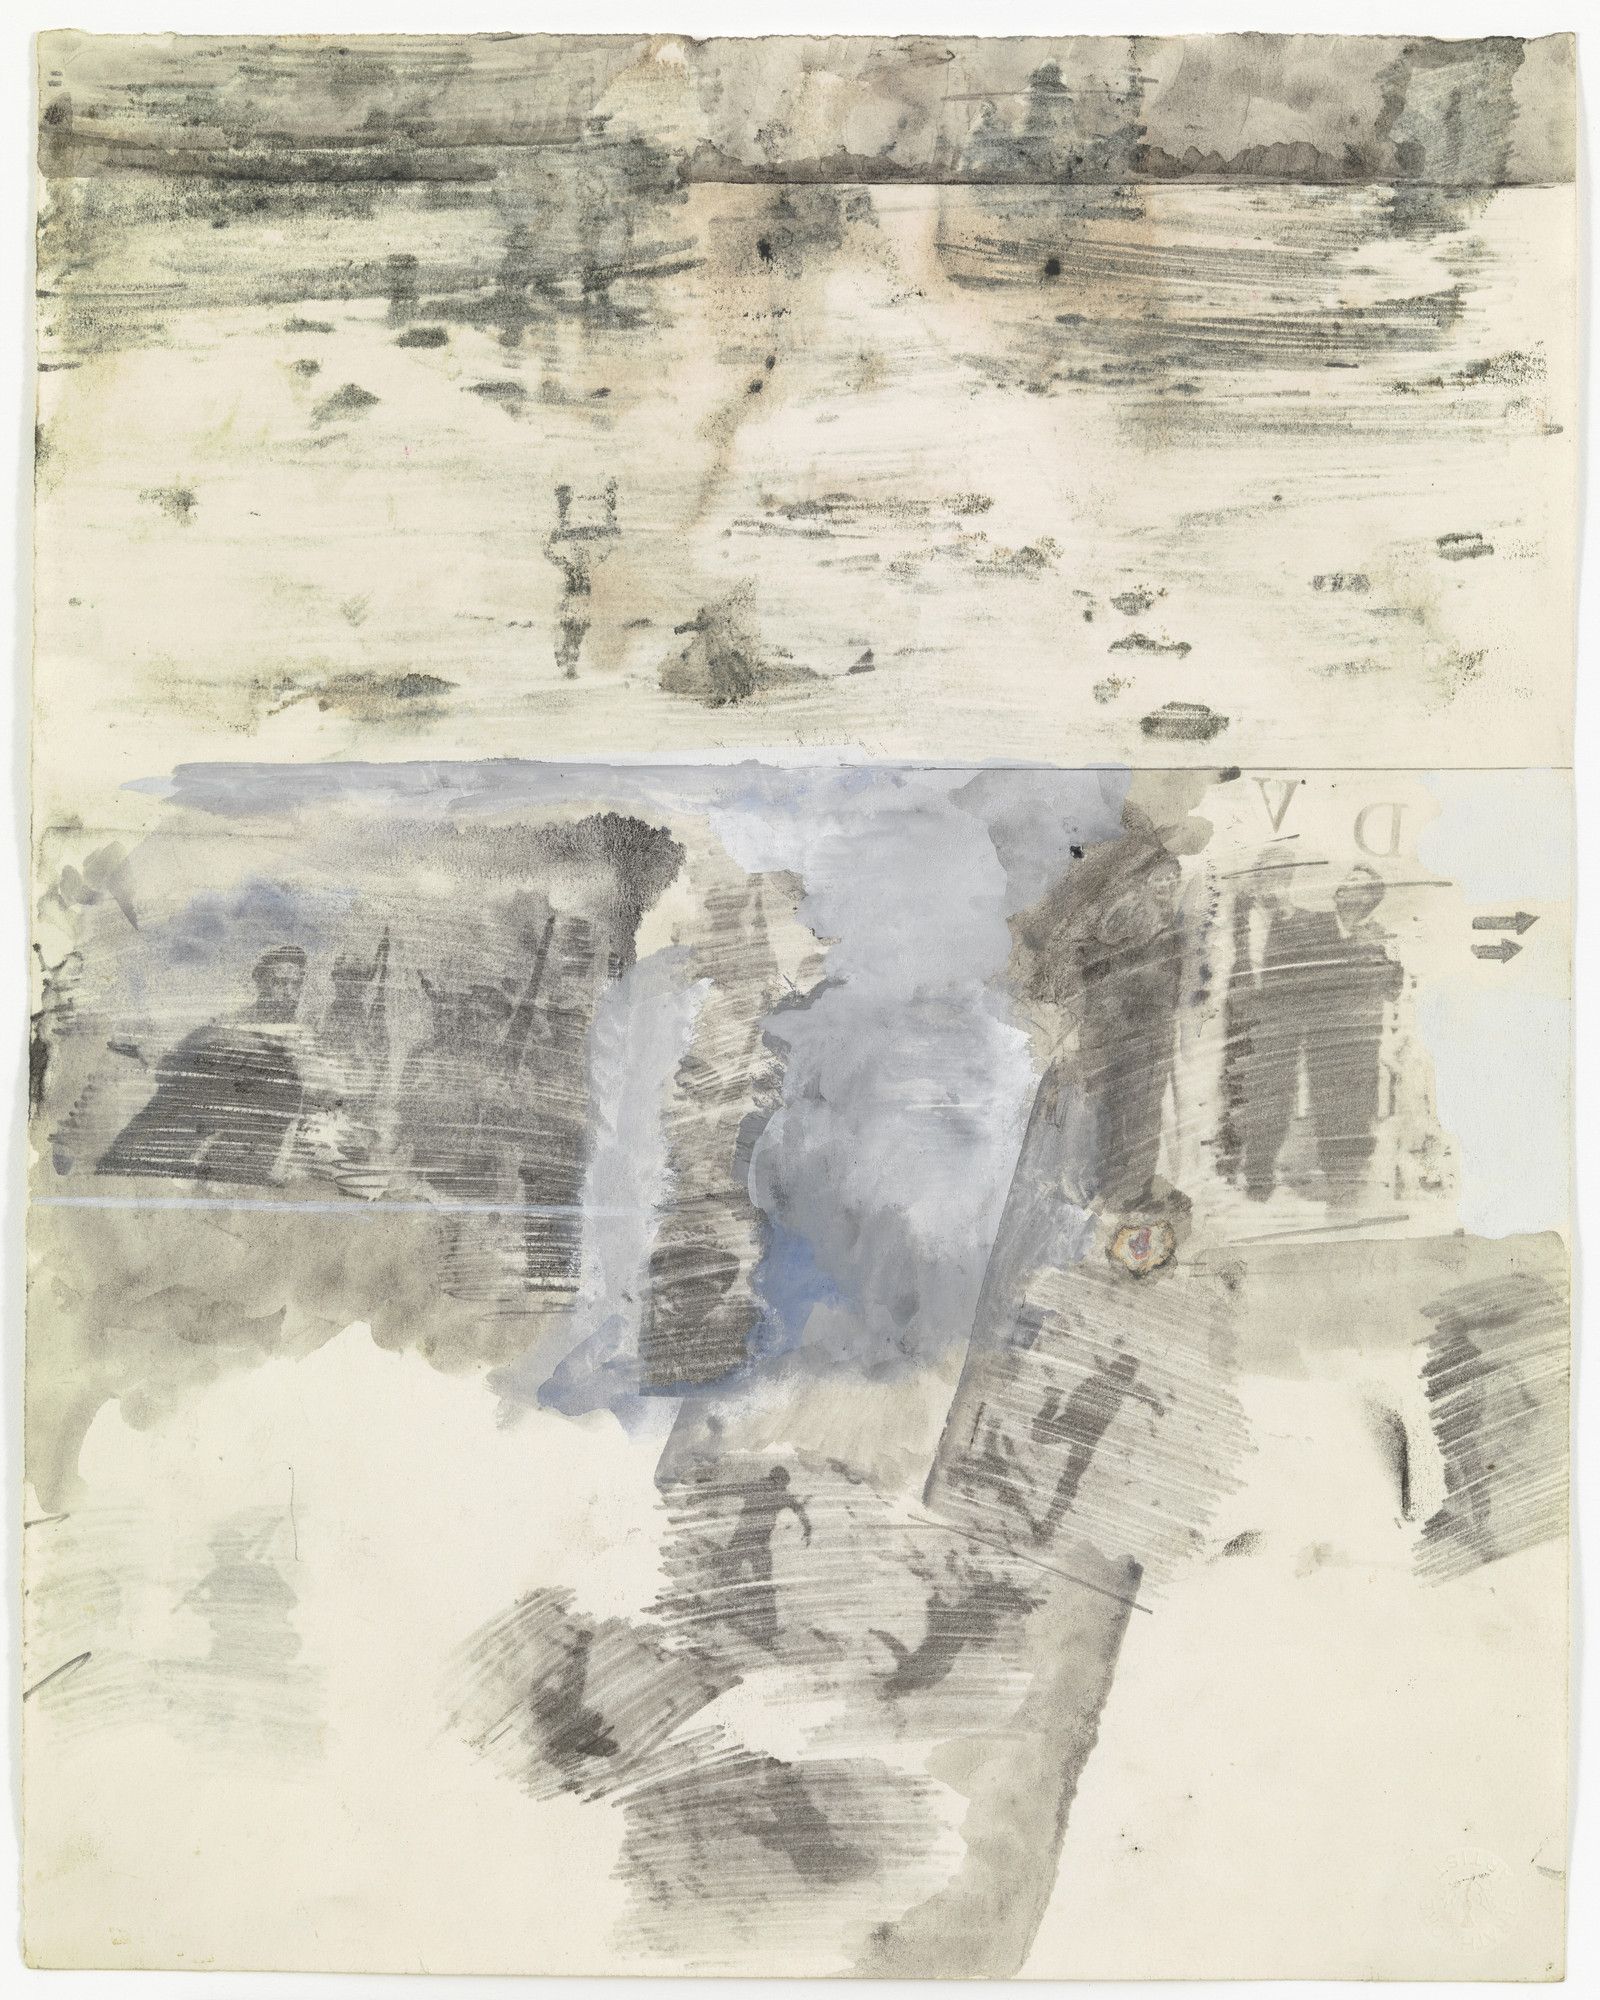 Robert Rauschenberg. Canto XXII: Circle Eight, Bolgia 5, The Grafters from the series Thirty-Four Illustrations for Dante's Inferno. (1959-60)